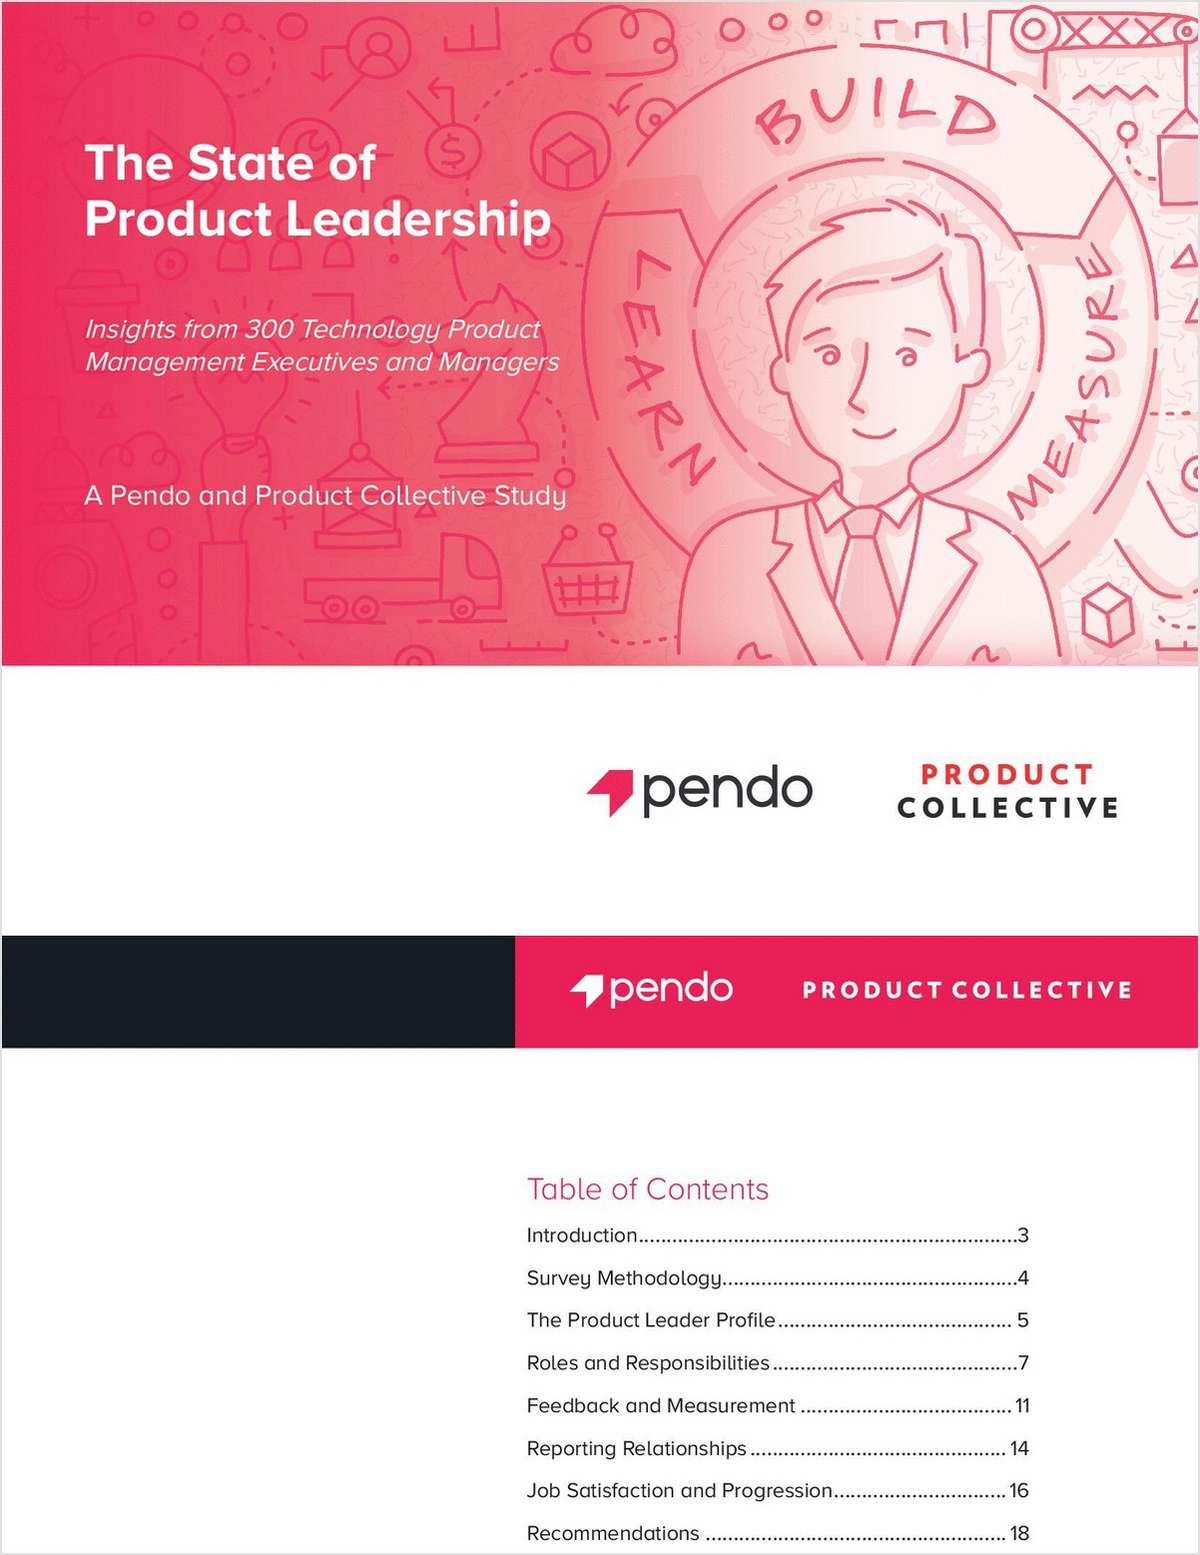 The State of Product Leadership